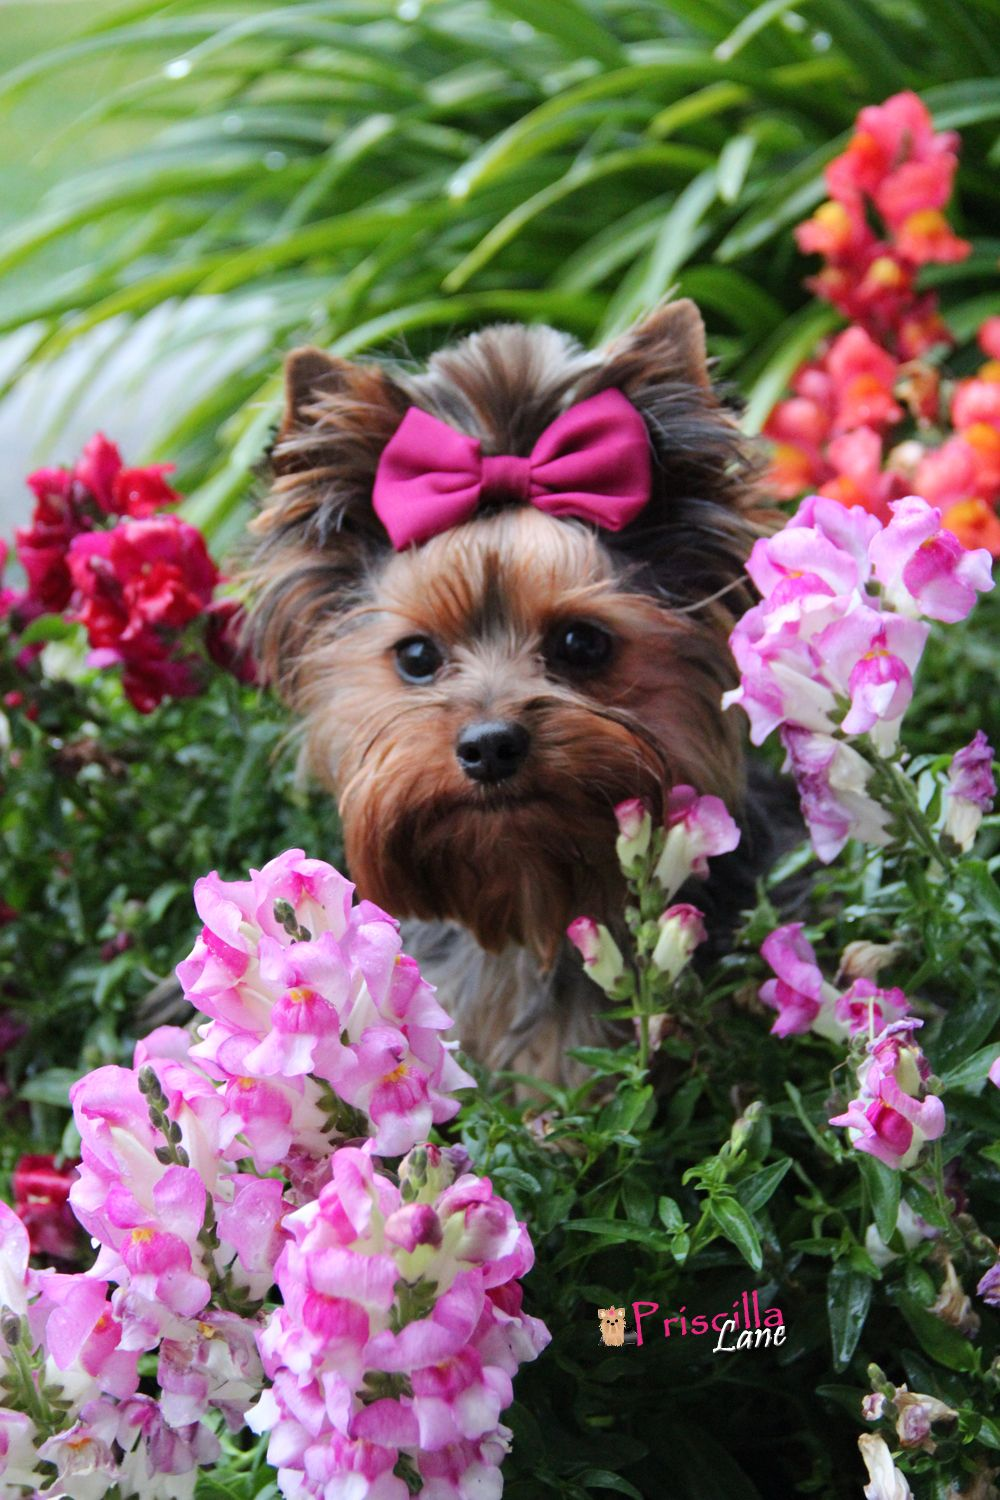 Oh My Goodness 3 Cachorros Yorkie Caes Fofos Yorkshire Terriers